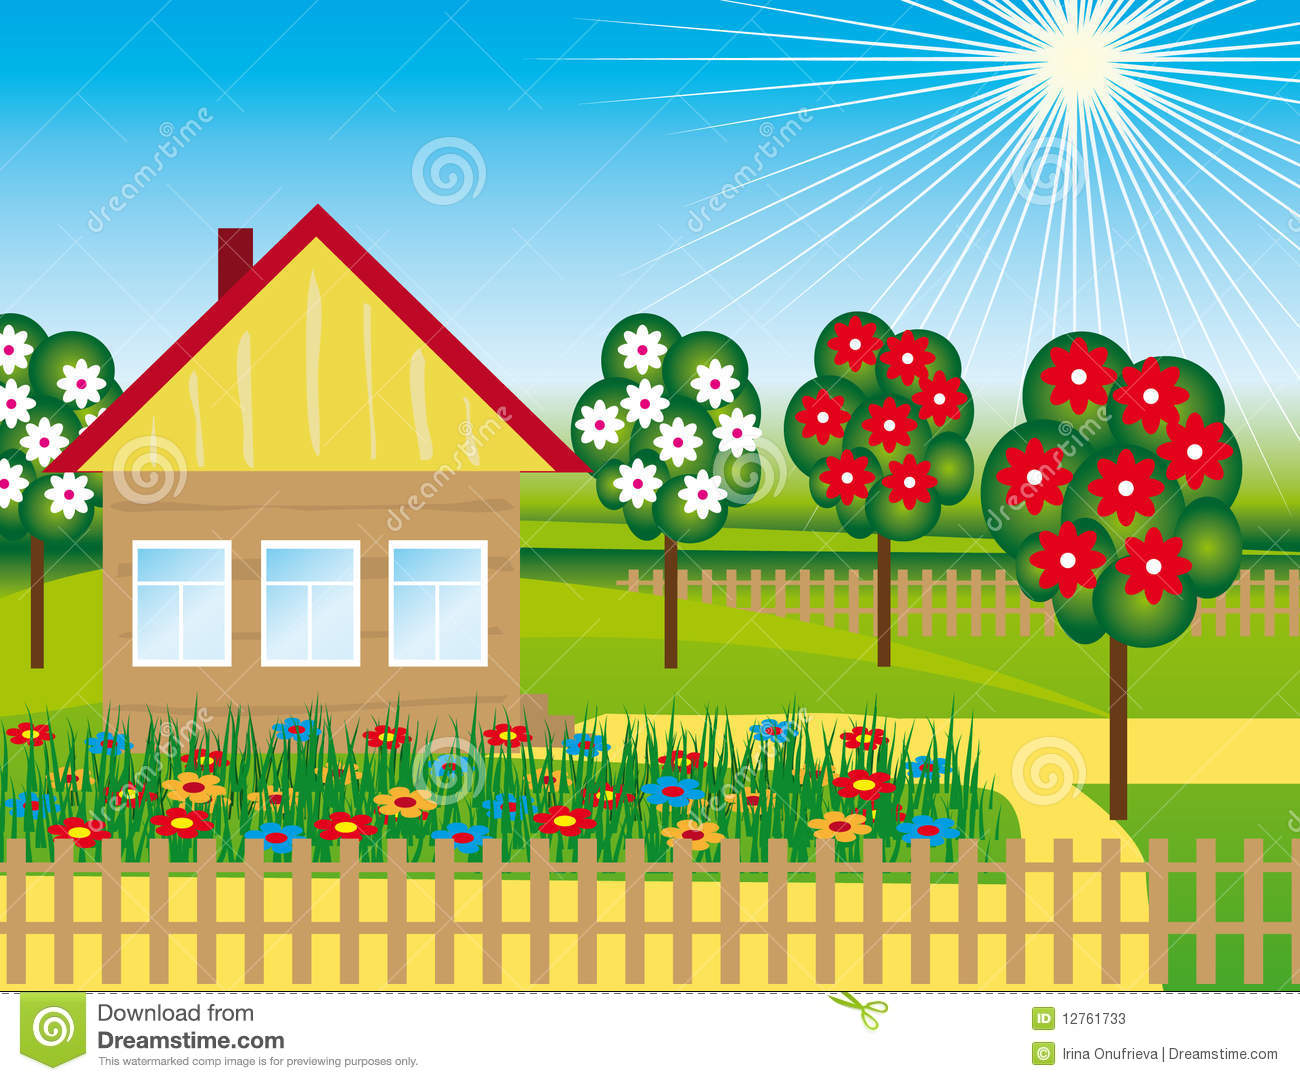 Flowers and trees near the house stock vector image for Casita infantil jardin